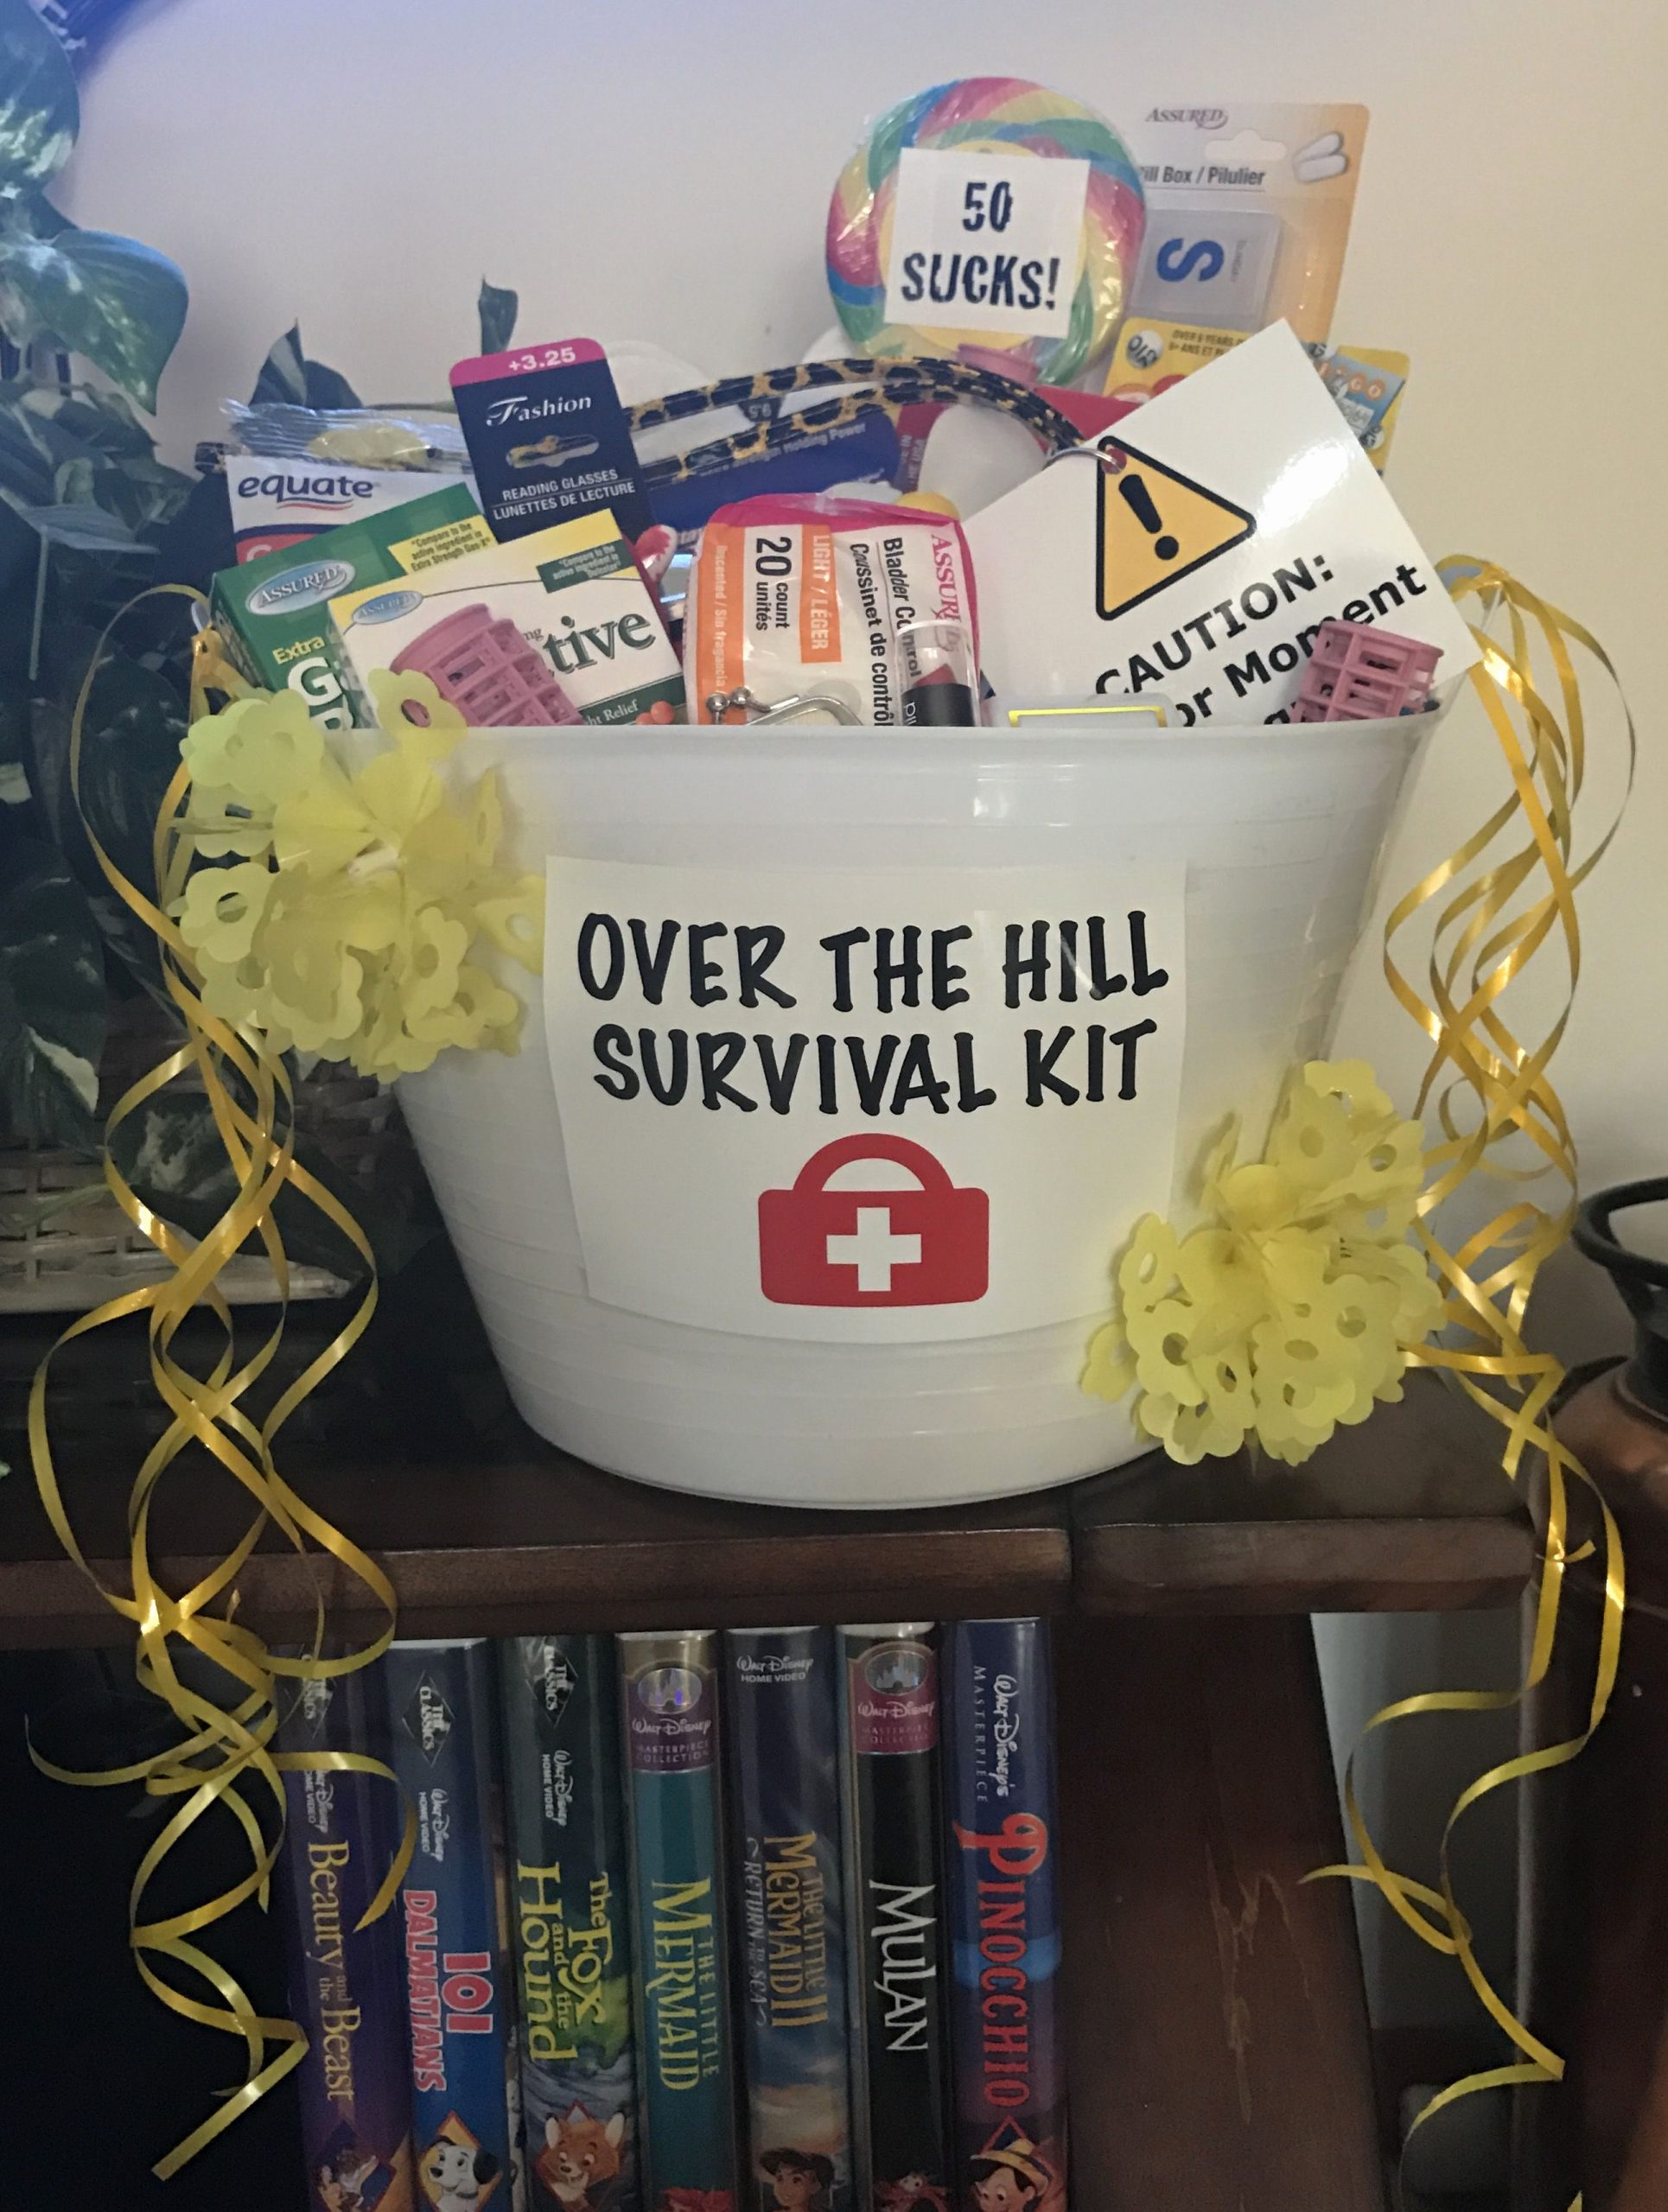 Over the Hill Birthday Decoration Ideas Awesome Over the Hill Survival Kit